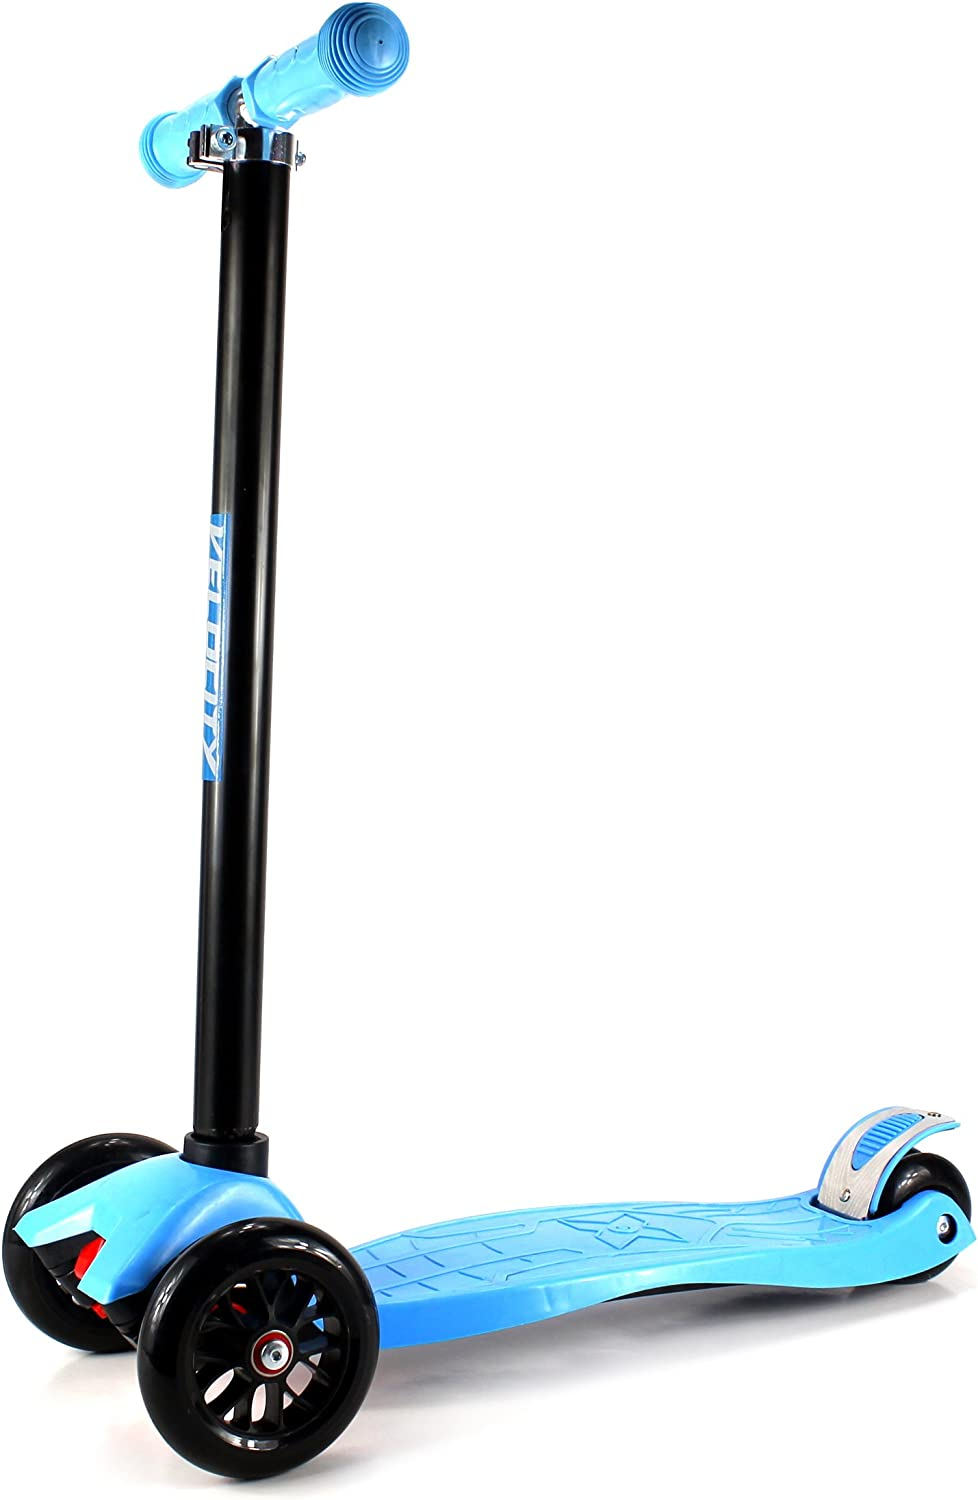 Velocity Scooters 22 Children s Kid s Four Wheeled Toy Kick Scooter w Adjustable Handlebars, Rear Fender Brake, Rubber Hand Grips Blue